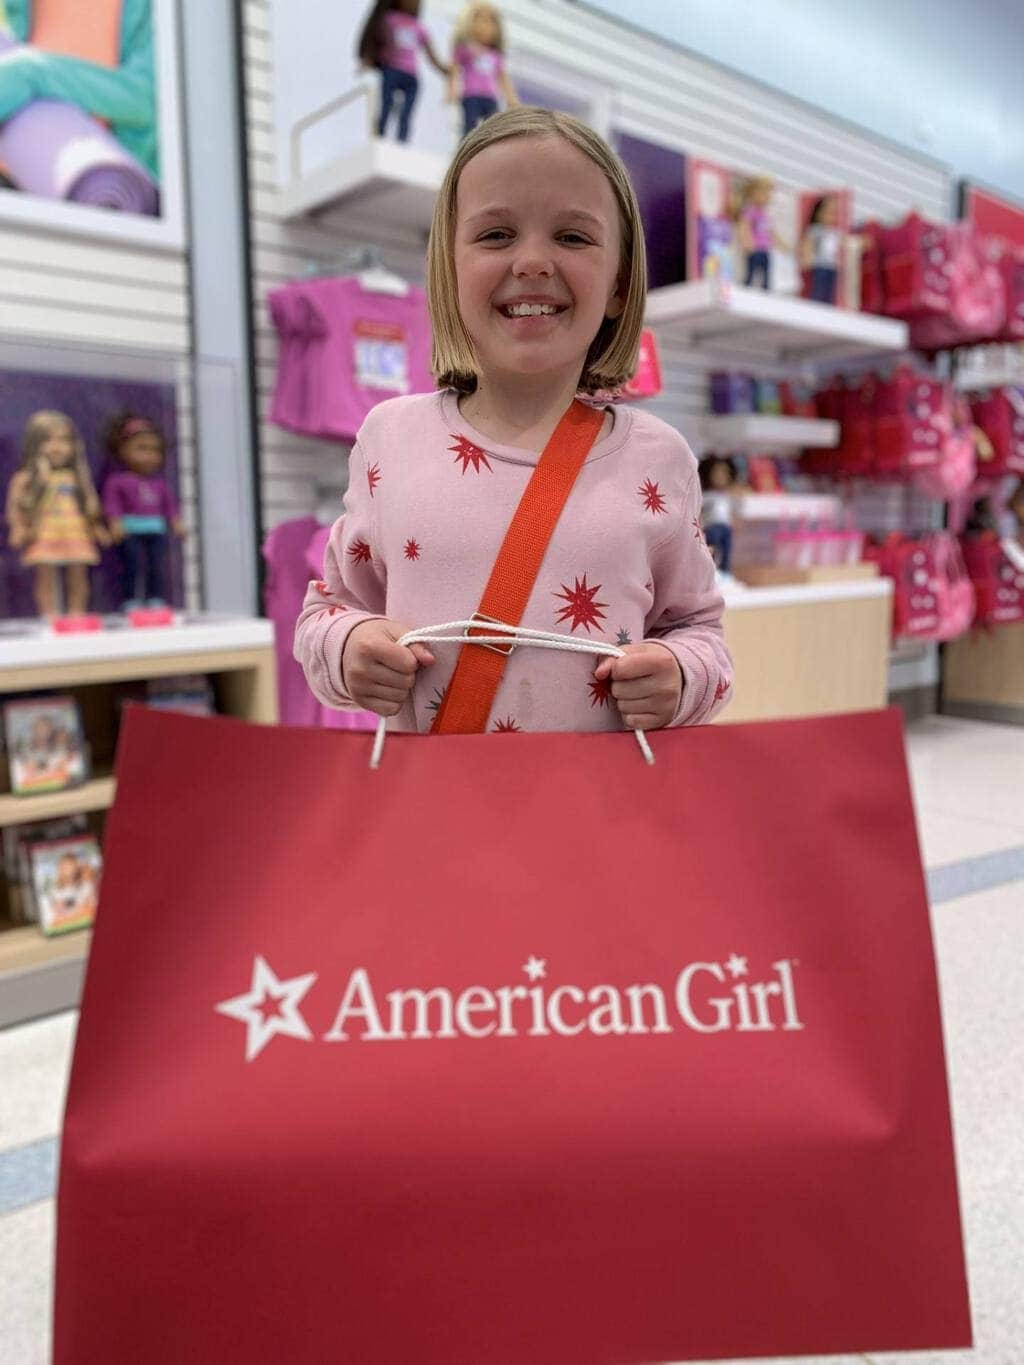 American Girl Doll purchase